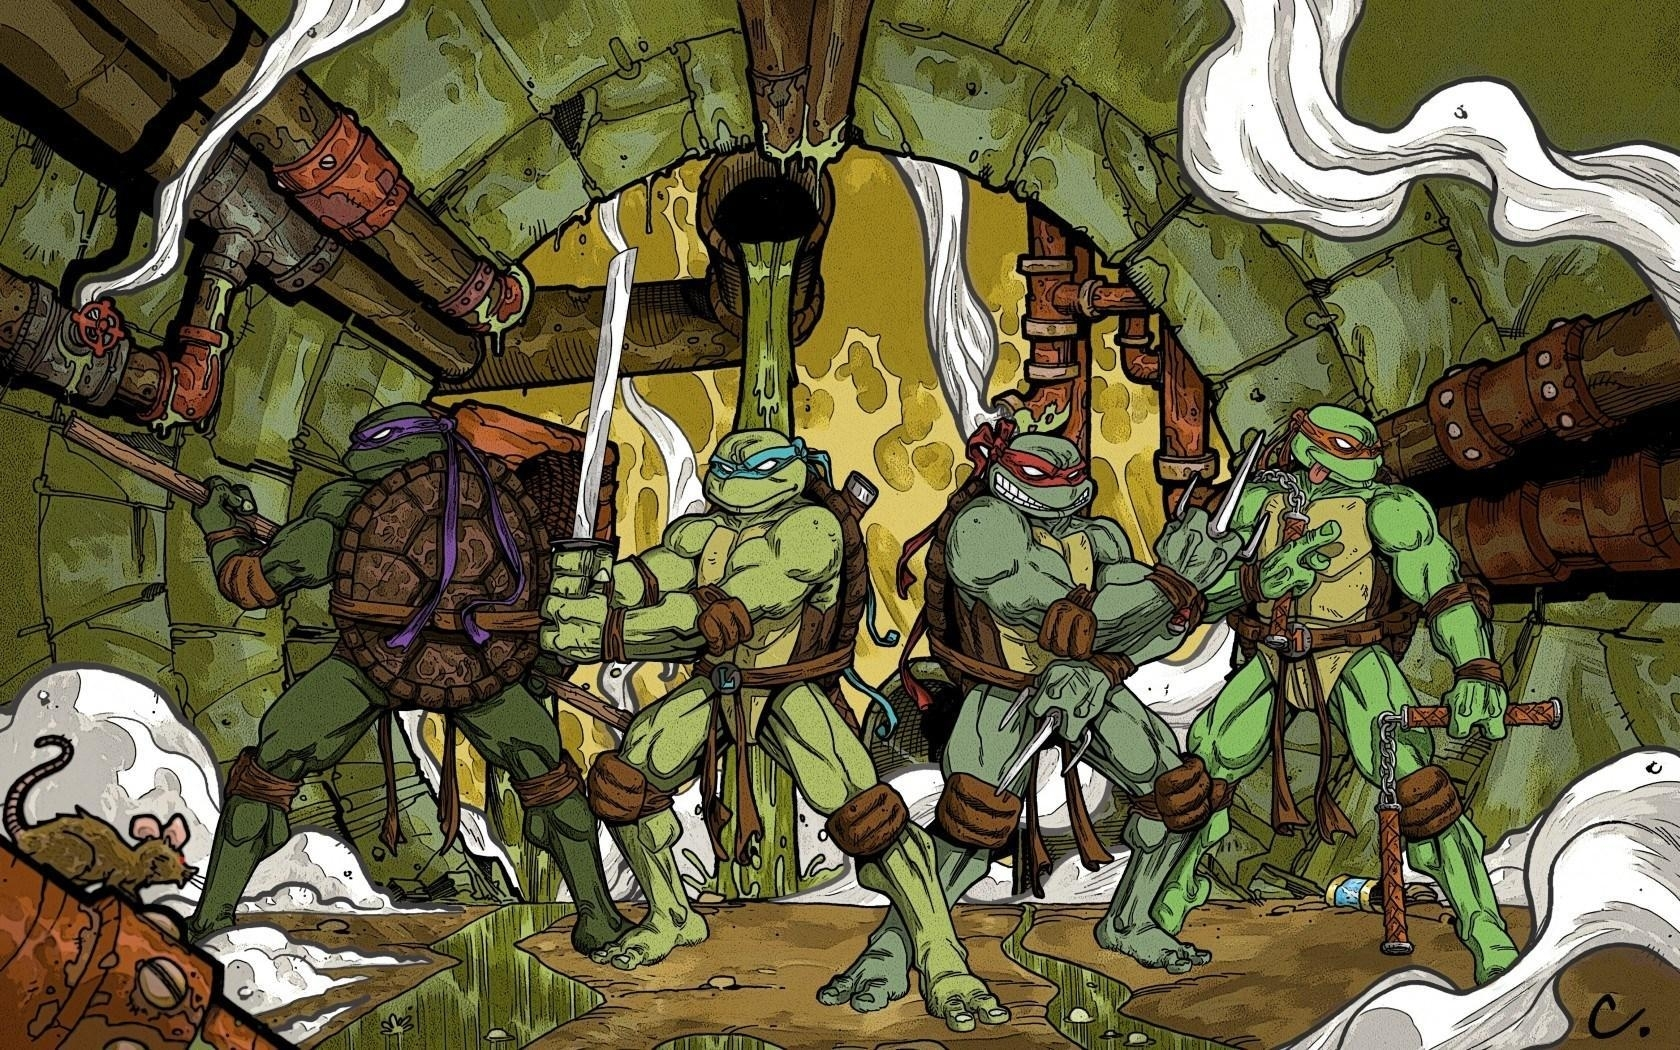 teenage mutant ninja turtles leonardo raphael michelangelo donatello